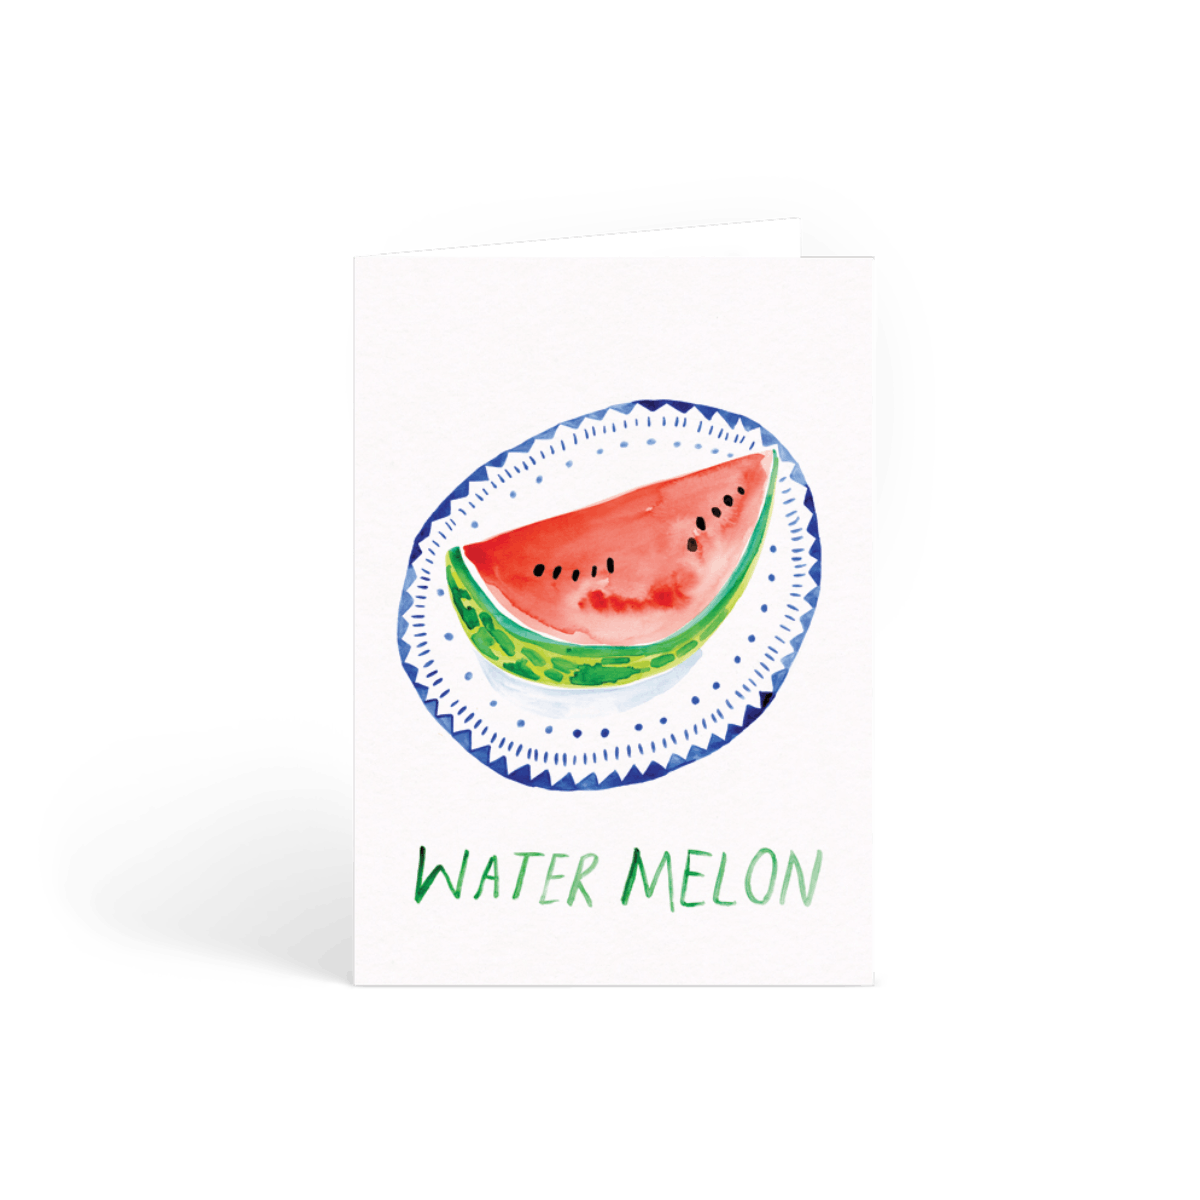 Https%3a%2f%2fwww.papier.com%2fproduct image%2f511%2f2%2fwatermelon 137 front 1453909329.png?ixlib=rb 1.1